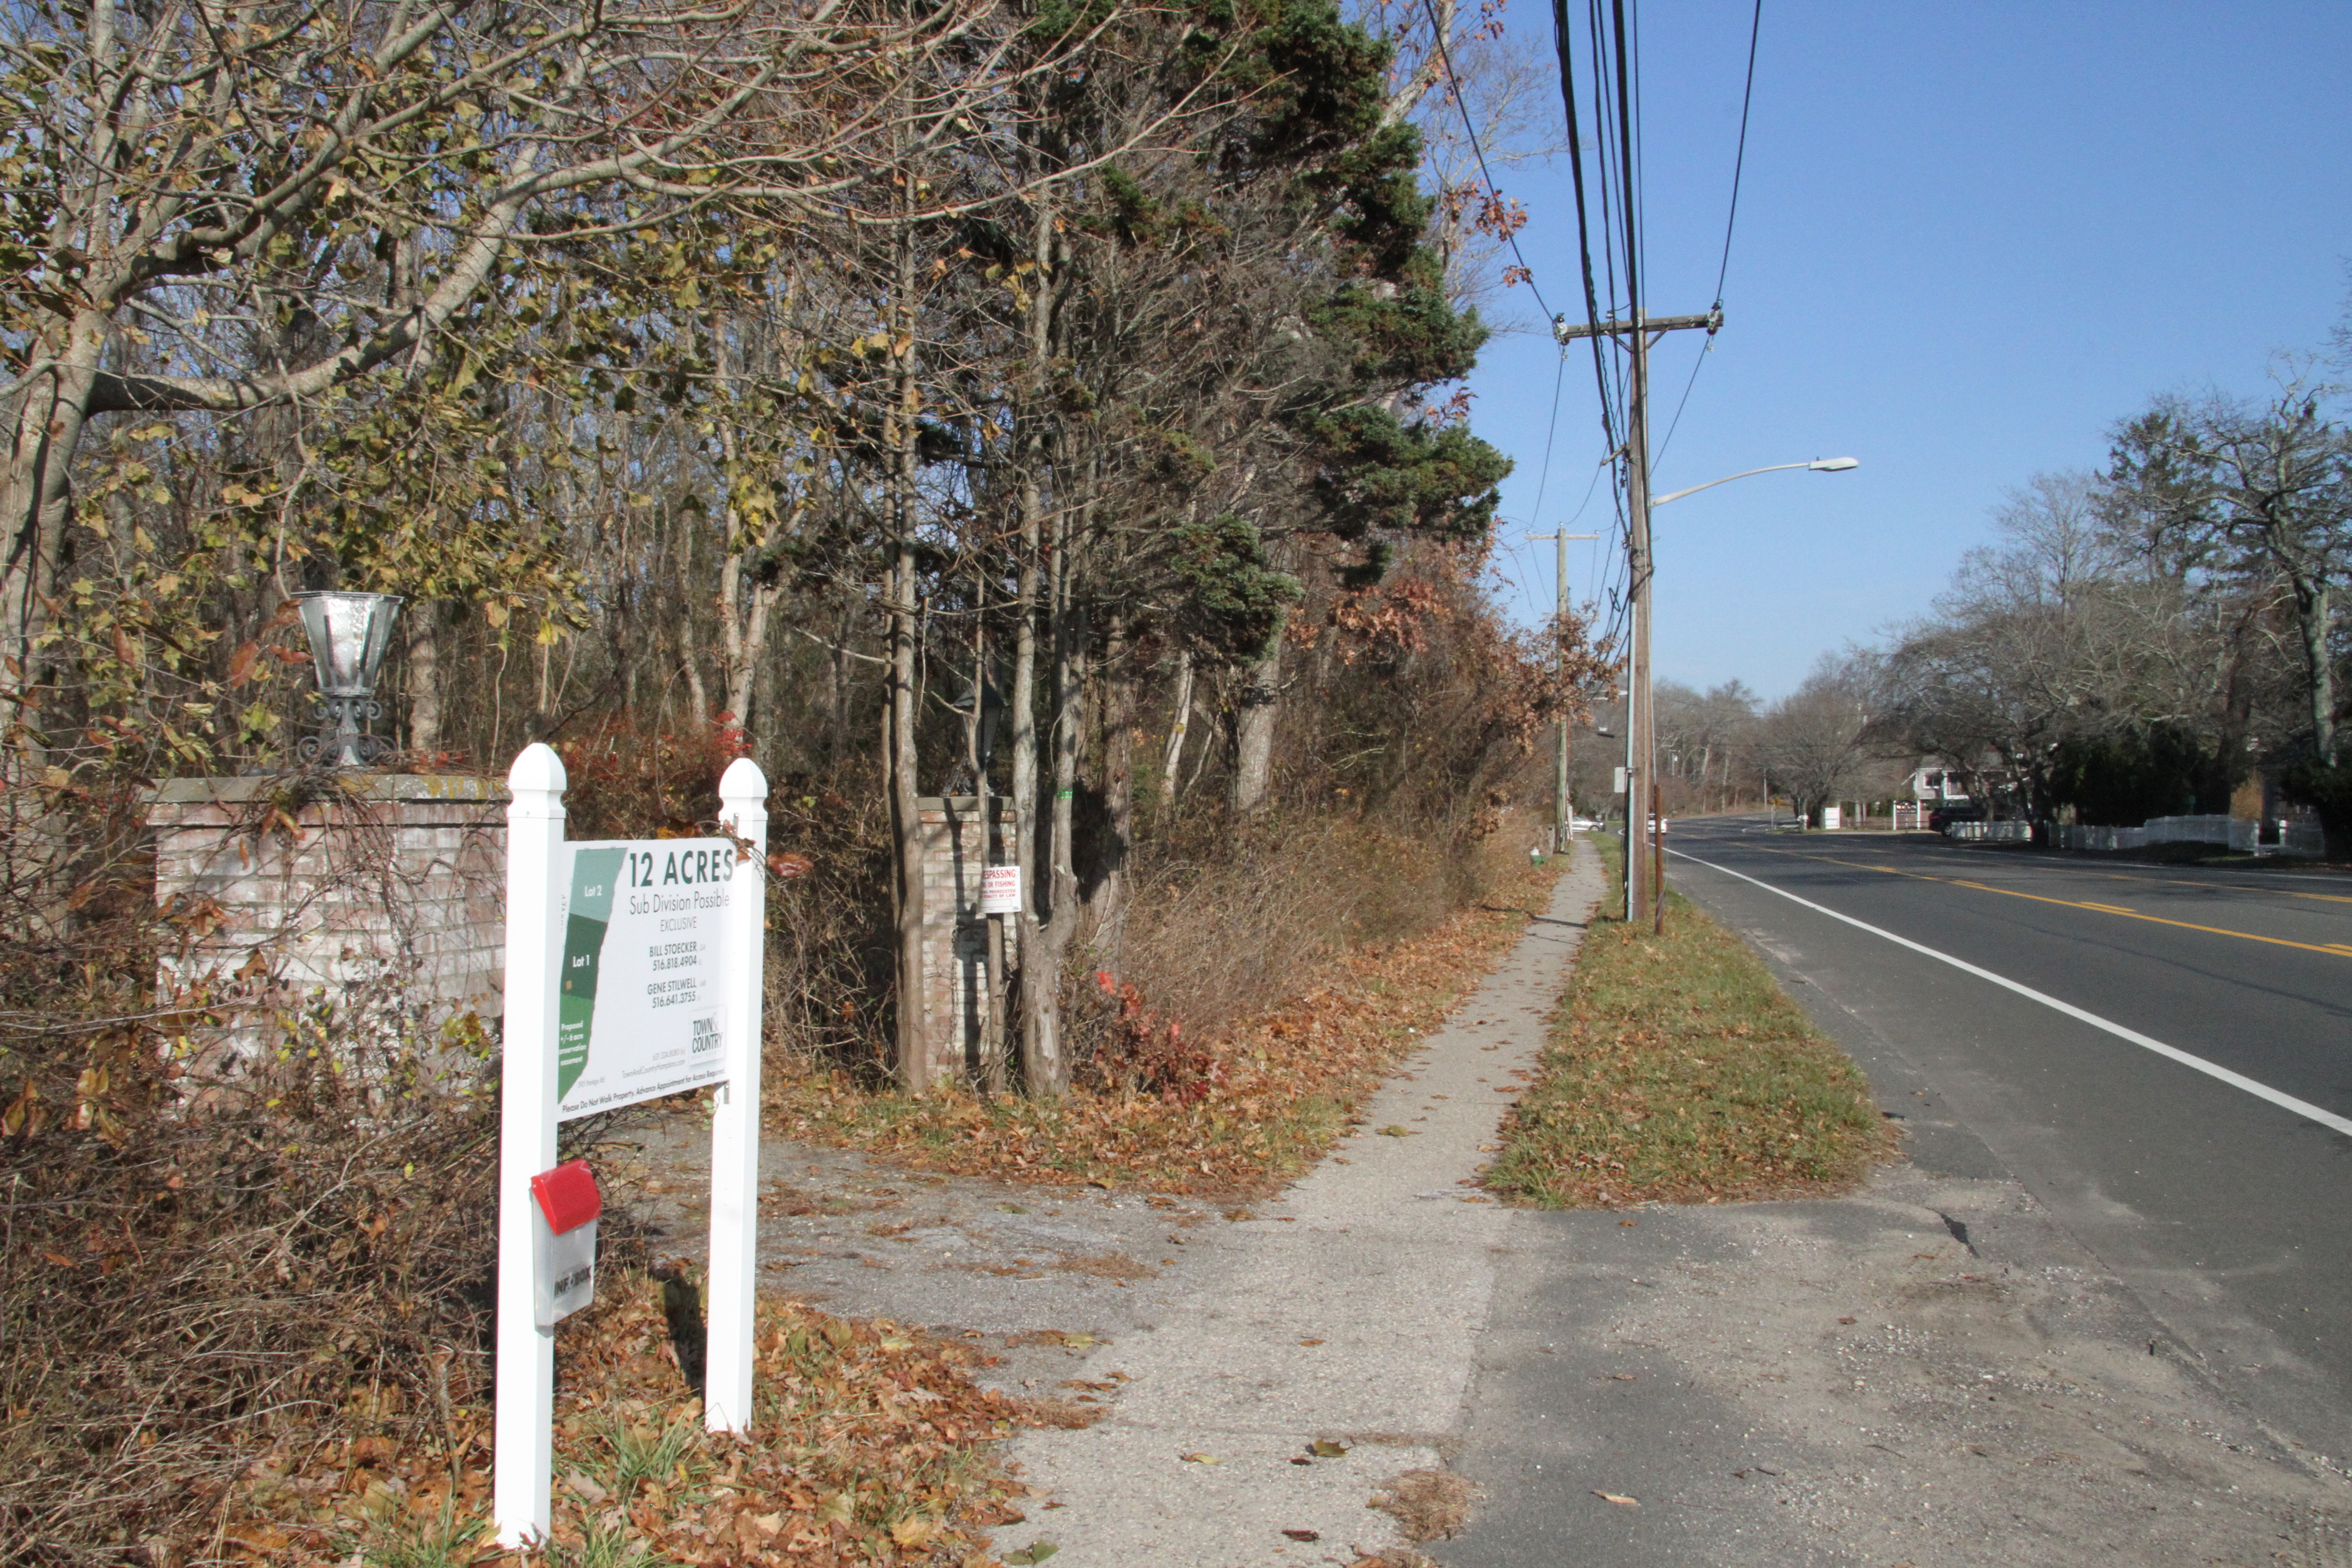 East Hampton Town has an agreement to purchase 12 acres of land off Pantigo Road, a portion of which it plans to use for a future affordable housing development project.